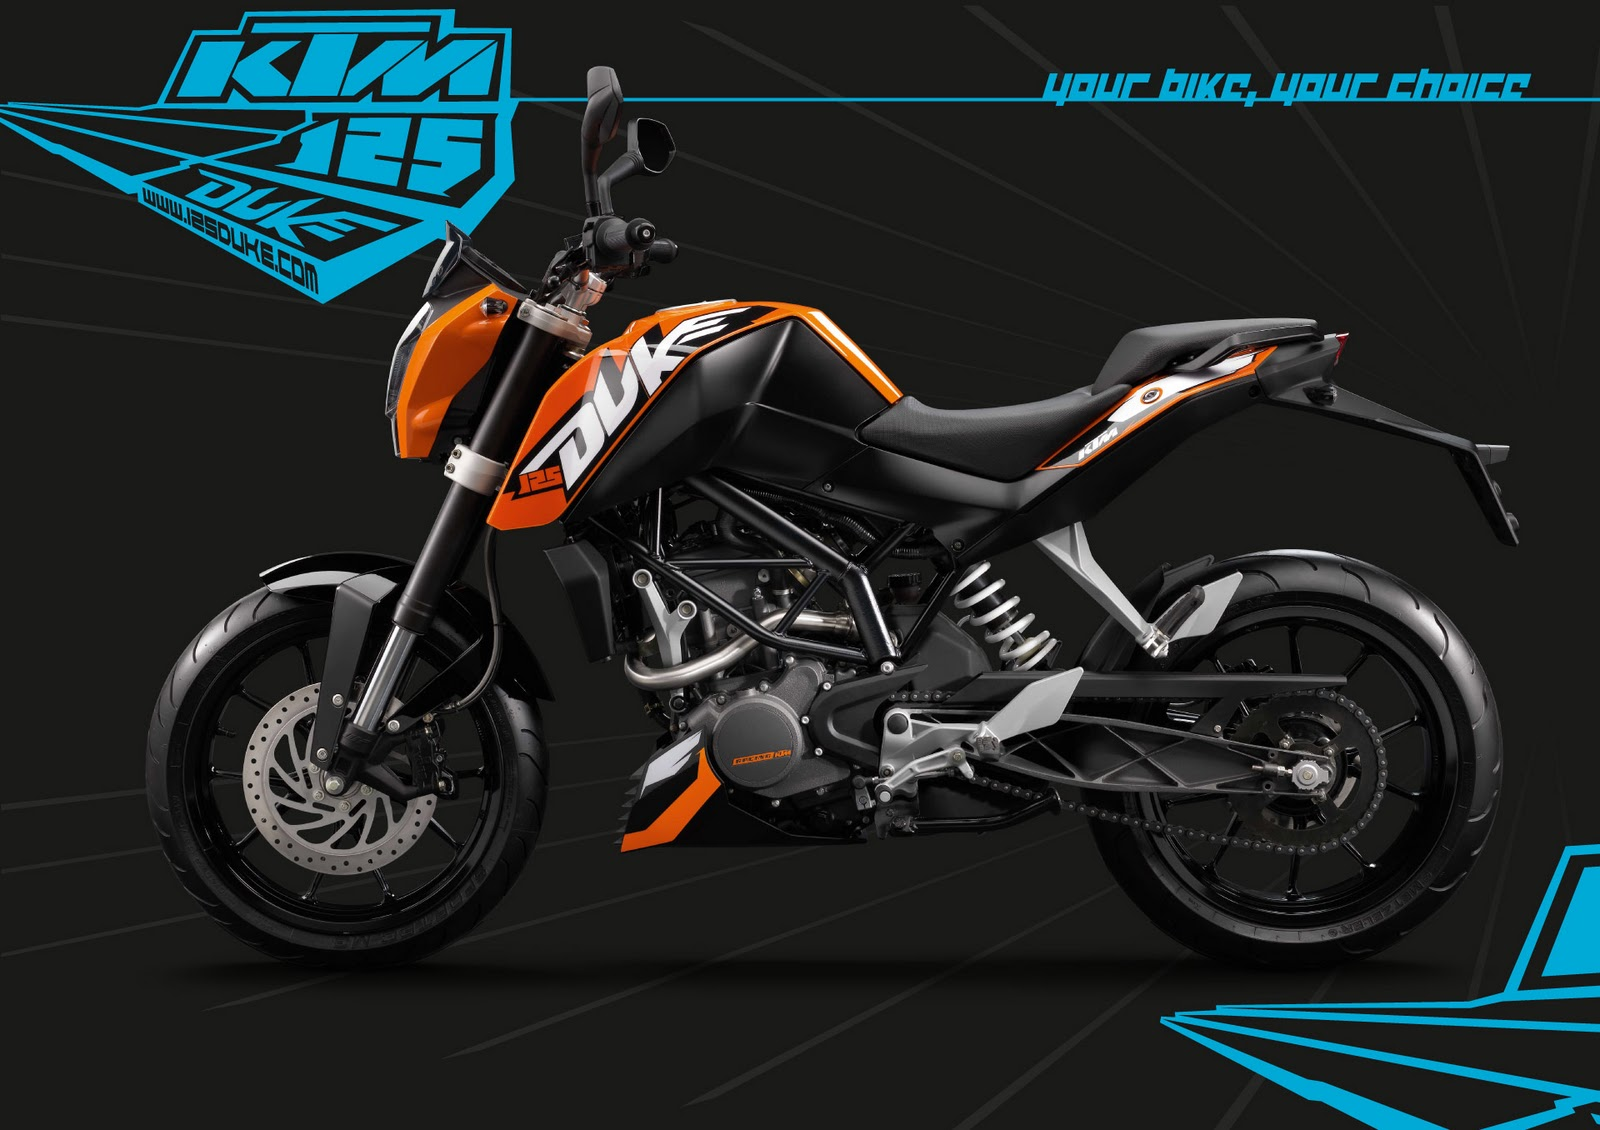 Ktm motorcycles hd wallpapers free wallaper downloads ktm sport - New 2016 Ktm Duke 125 Hd Wallpapers